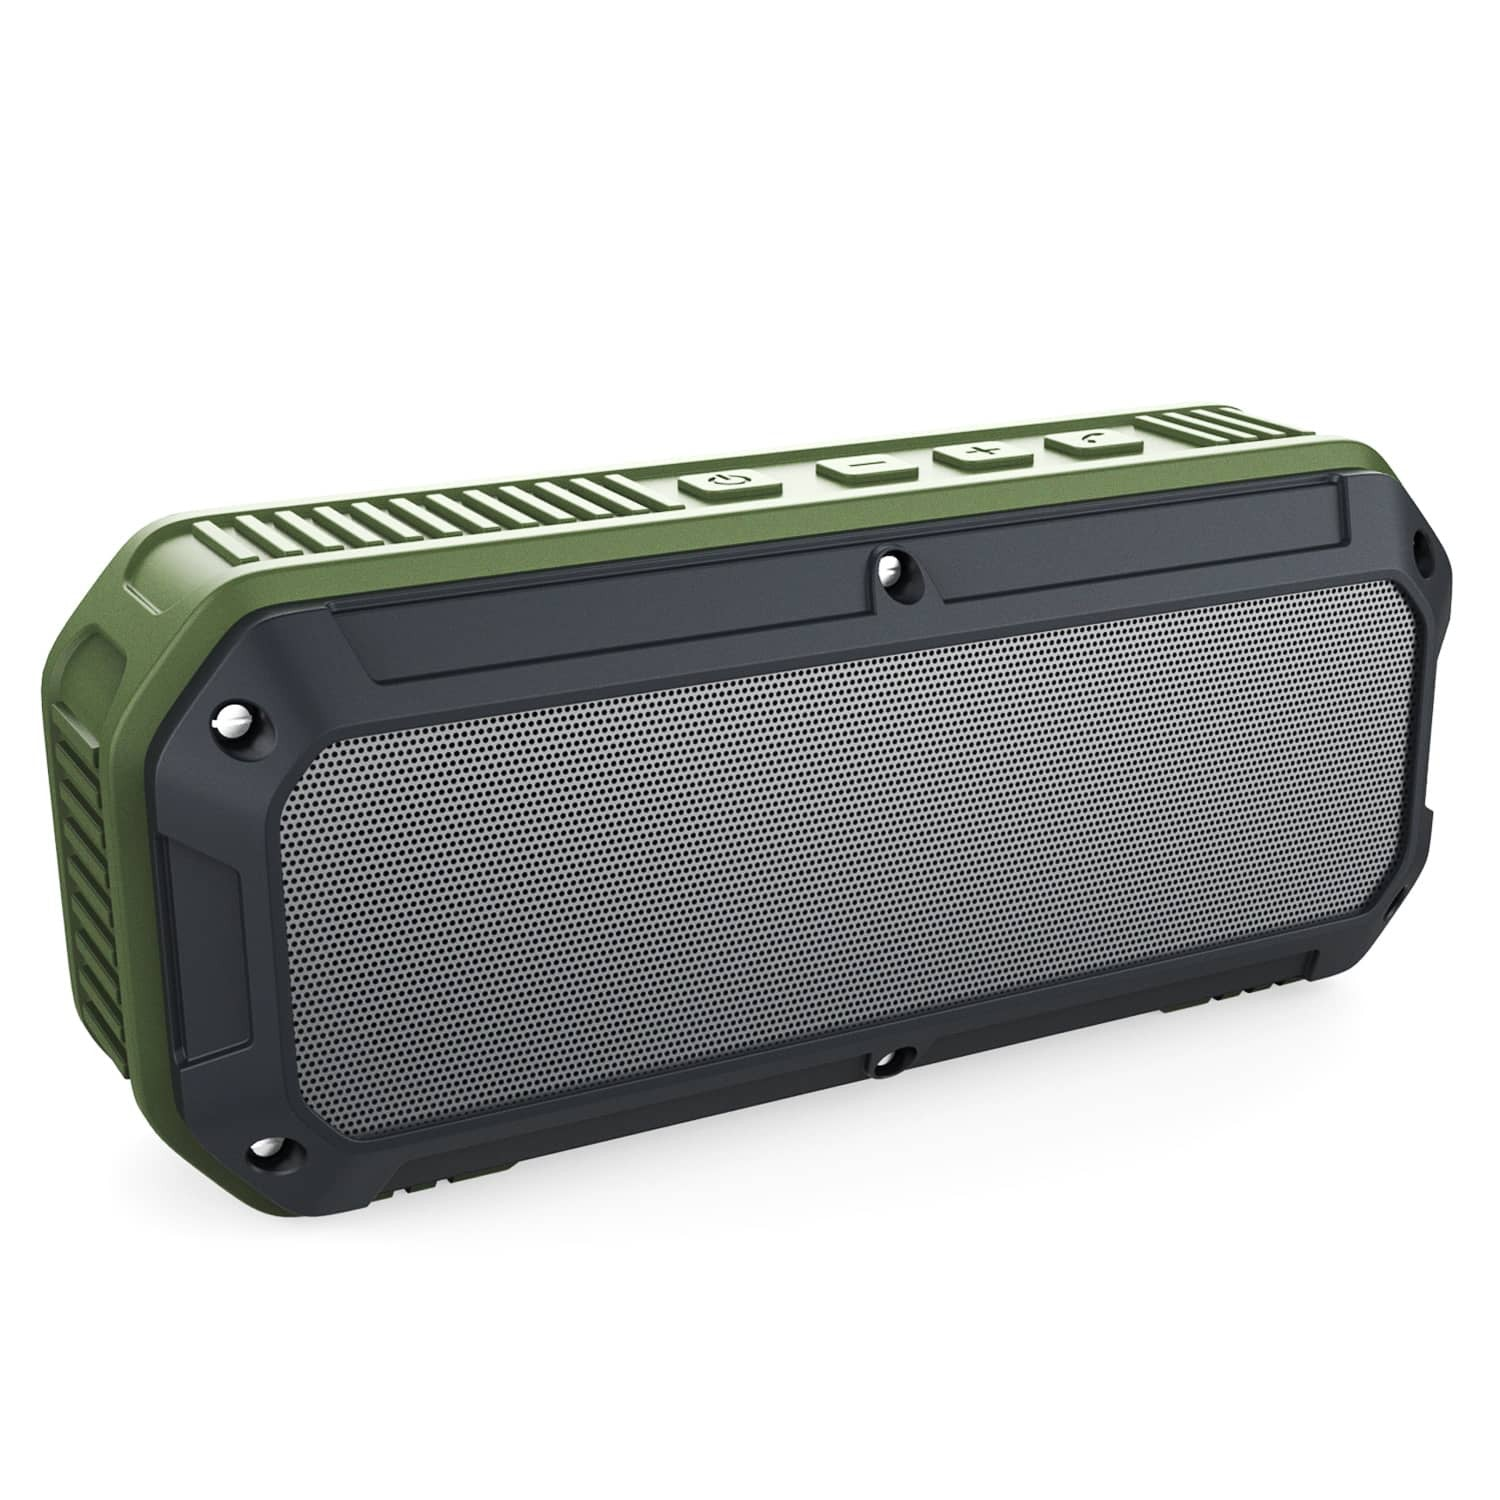 SK-M8 IP64 Outdoor Waterproof Wireless bluetooth speaker